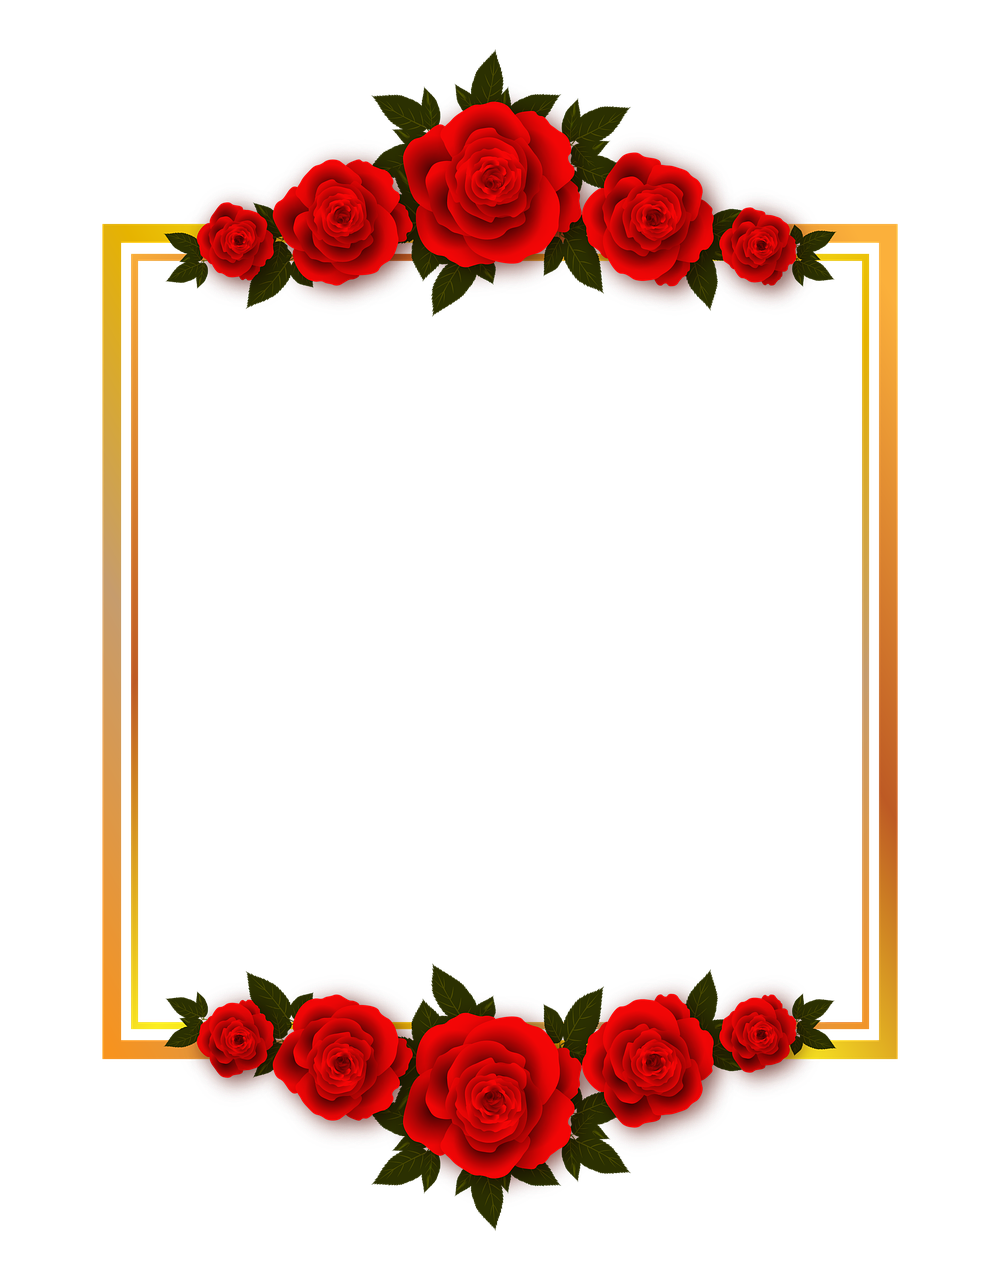 Vacation, Rose, Flowers, Plate, Frame, Photo Frame